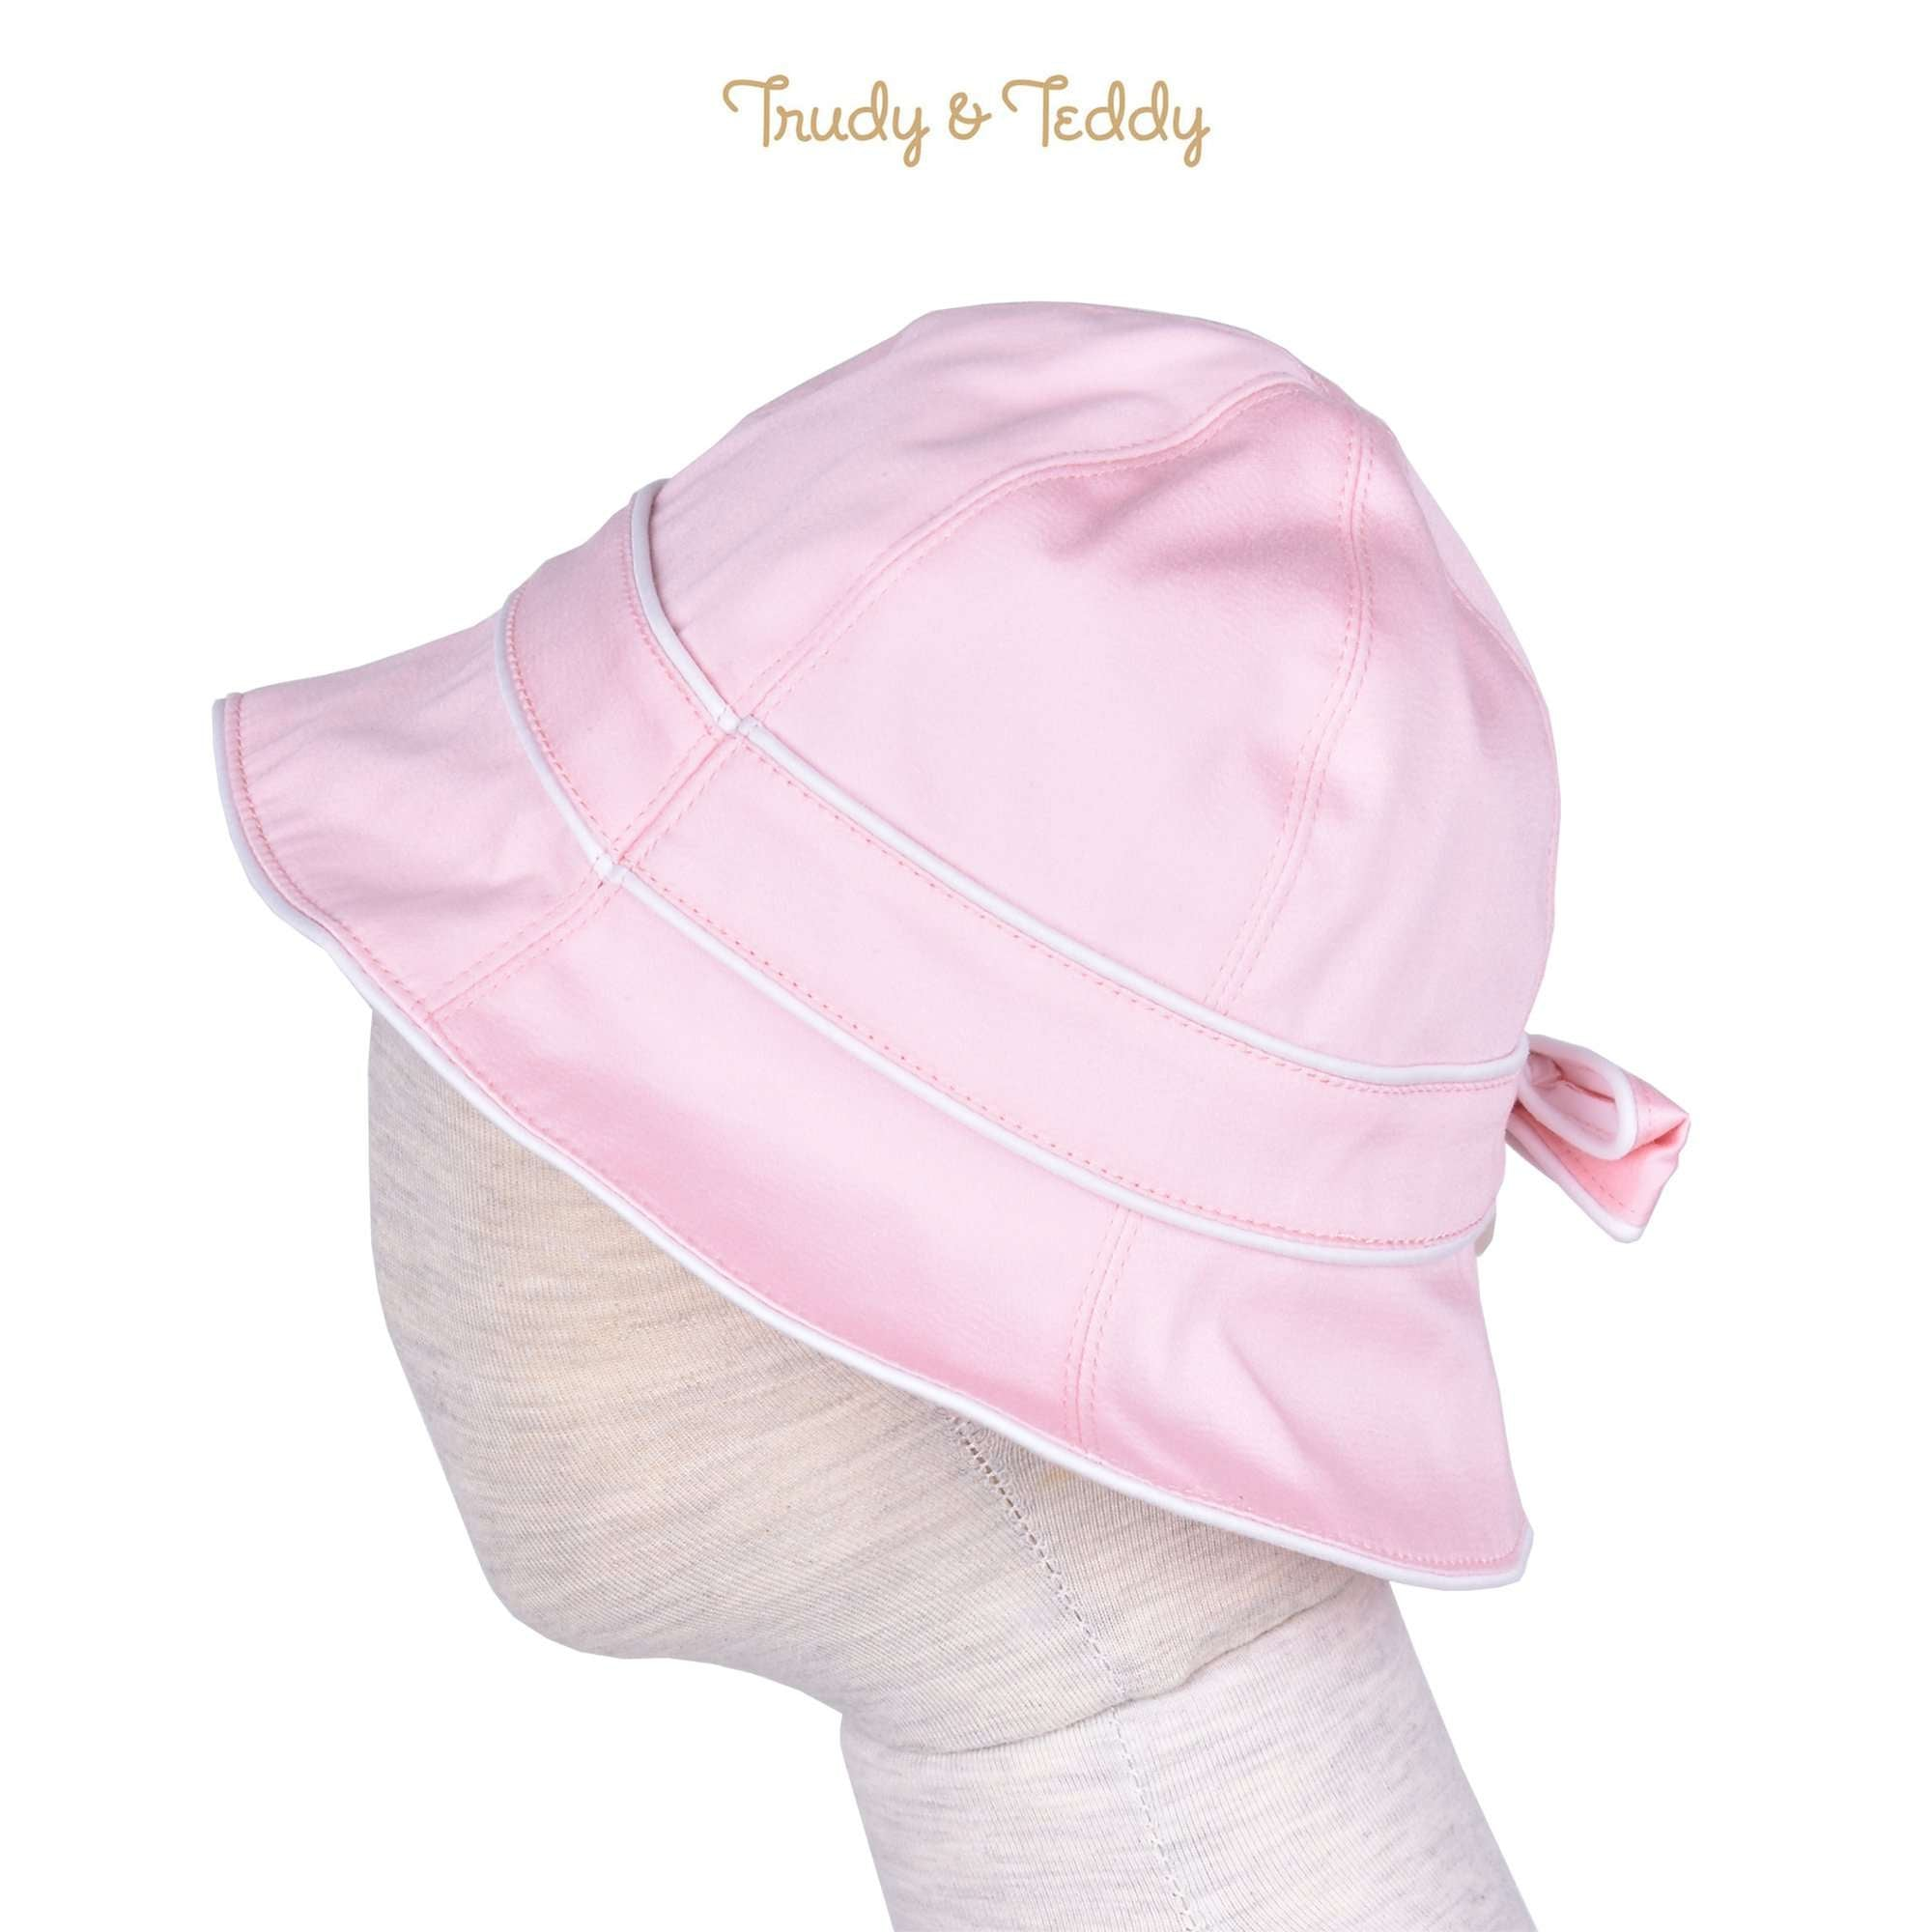 Trudy & Teddy Toddler Girl Woven Hat - Pink 815158-713 : Buy Trudy & Teddy online at CMG.MY